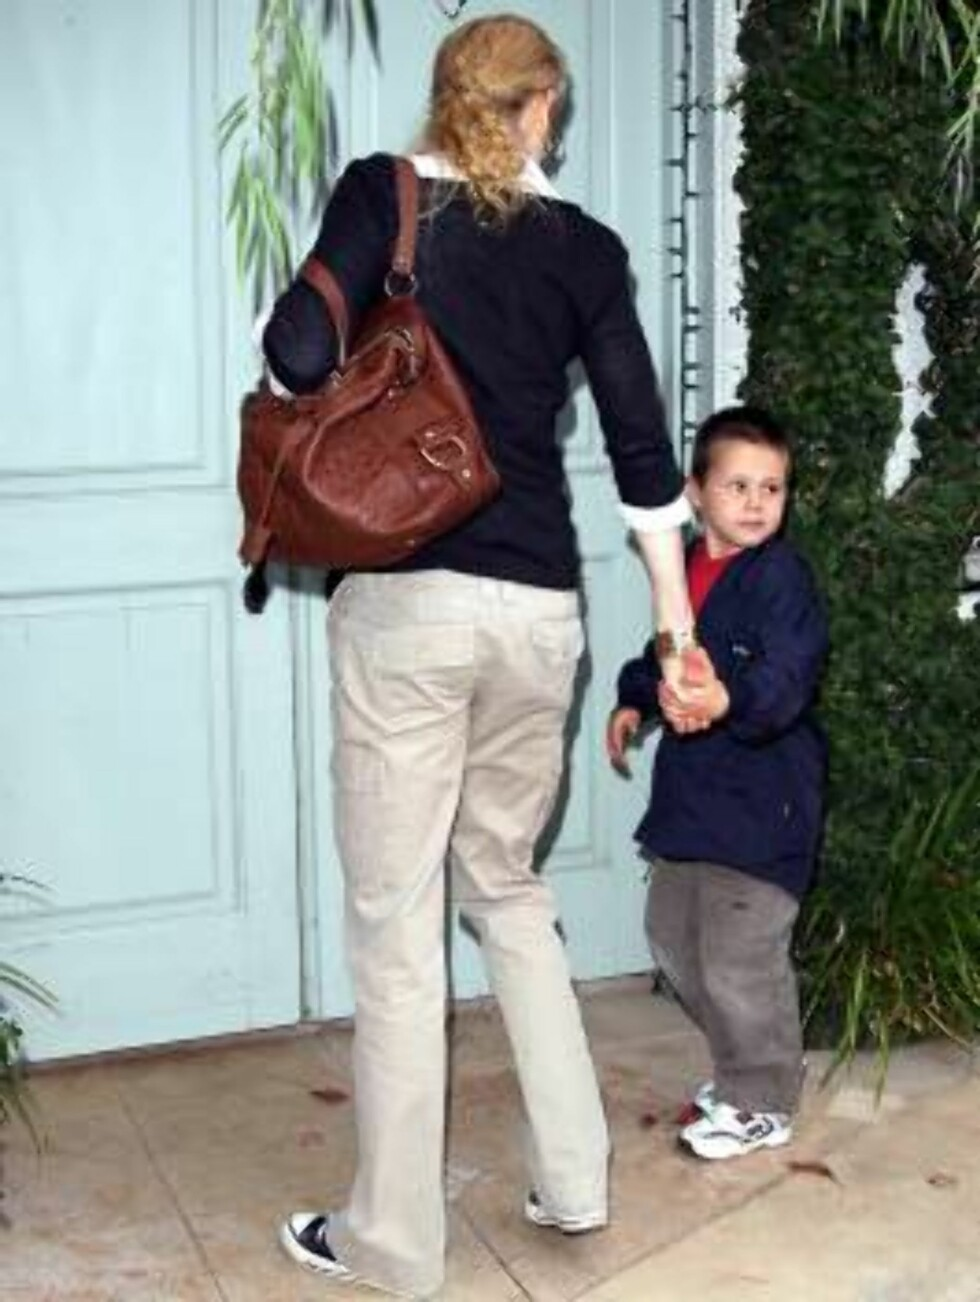 Nicole Kidman carrying her nephew in Los Angeles Oct 25, 2006 X17agency exclusive Foto: All Over Press